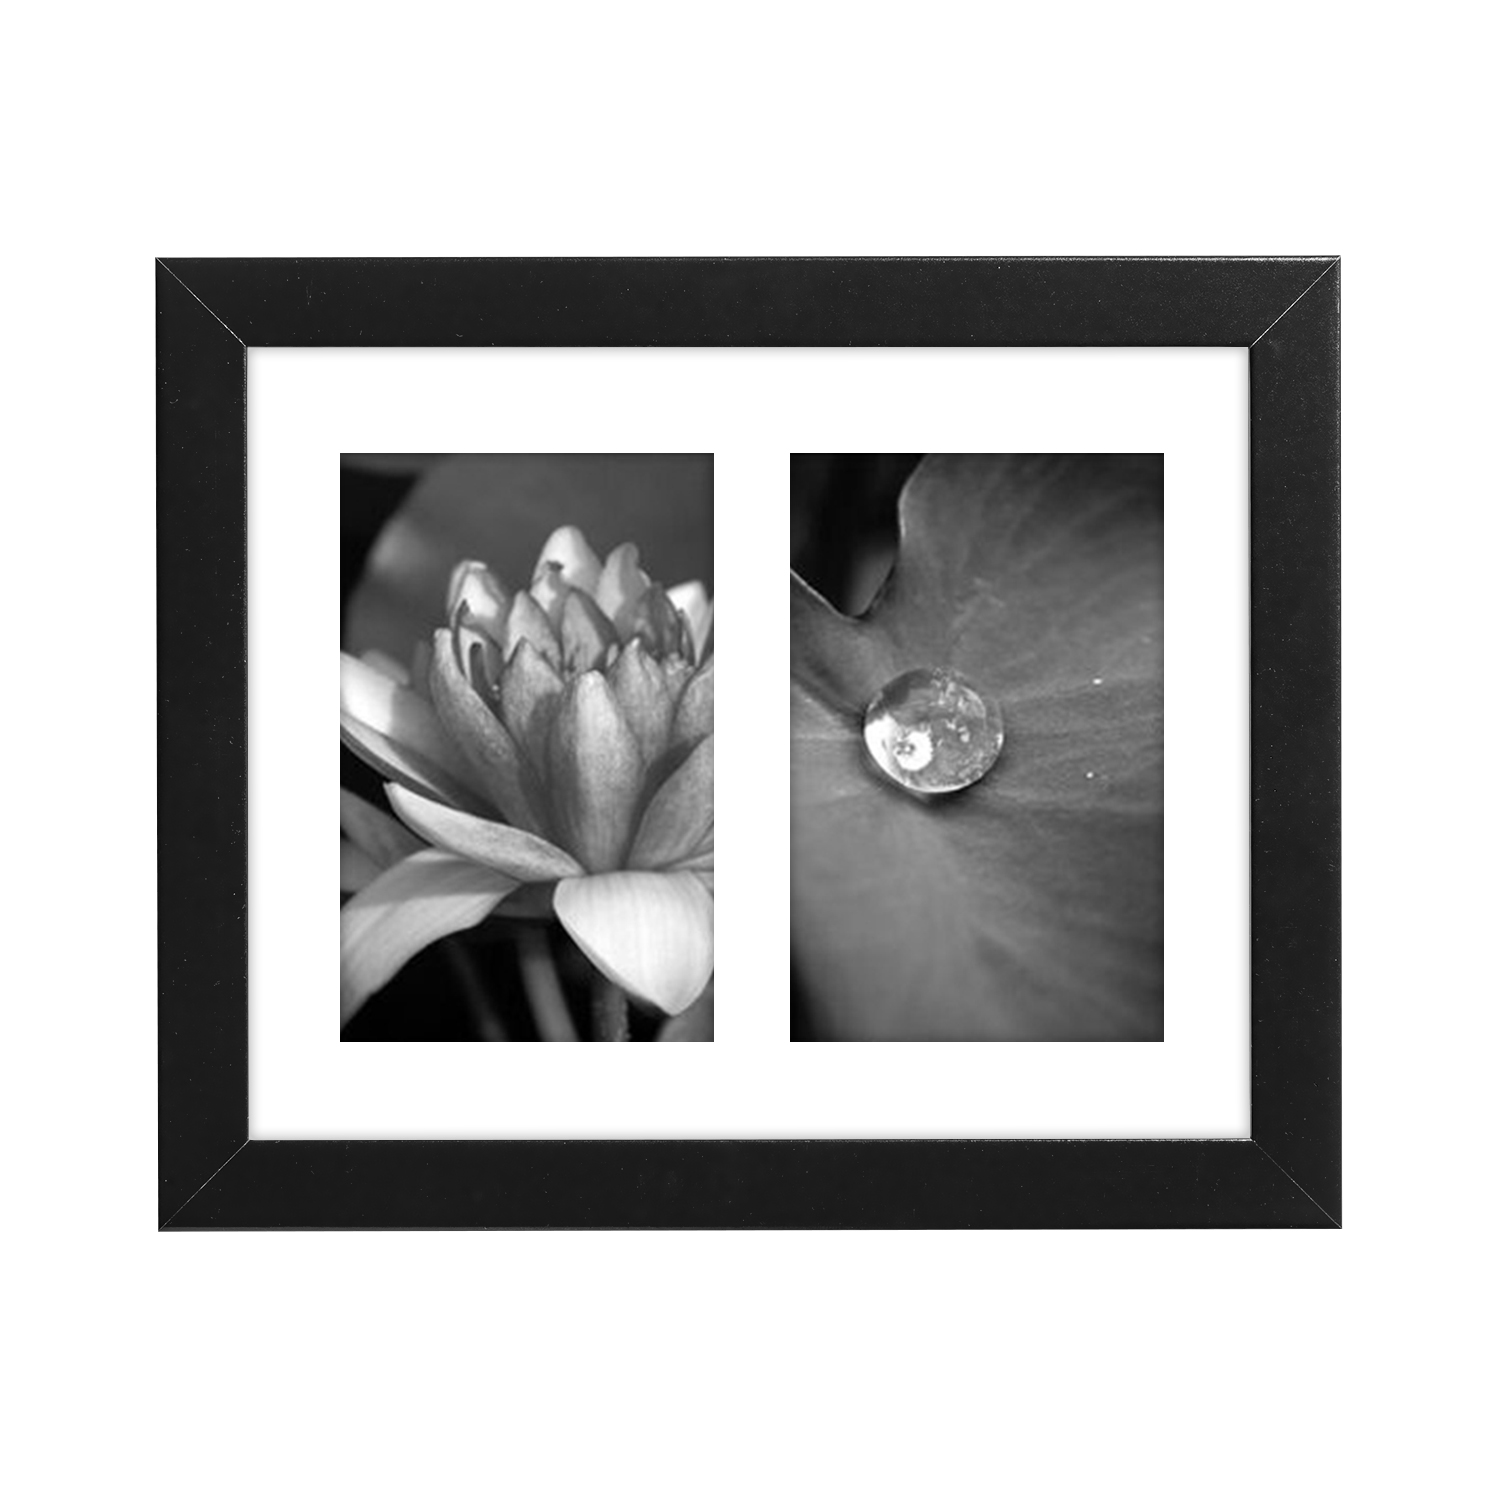 8x10 inch Black Collage Picture Frame with Two 4x6 inch Openings, Glass Front